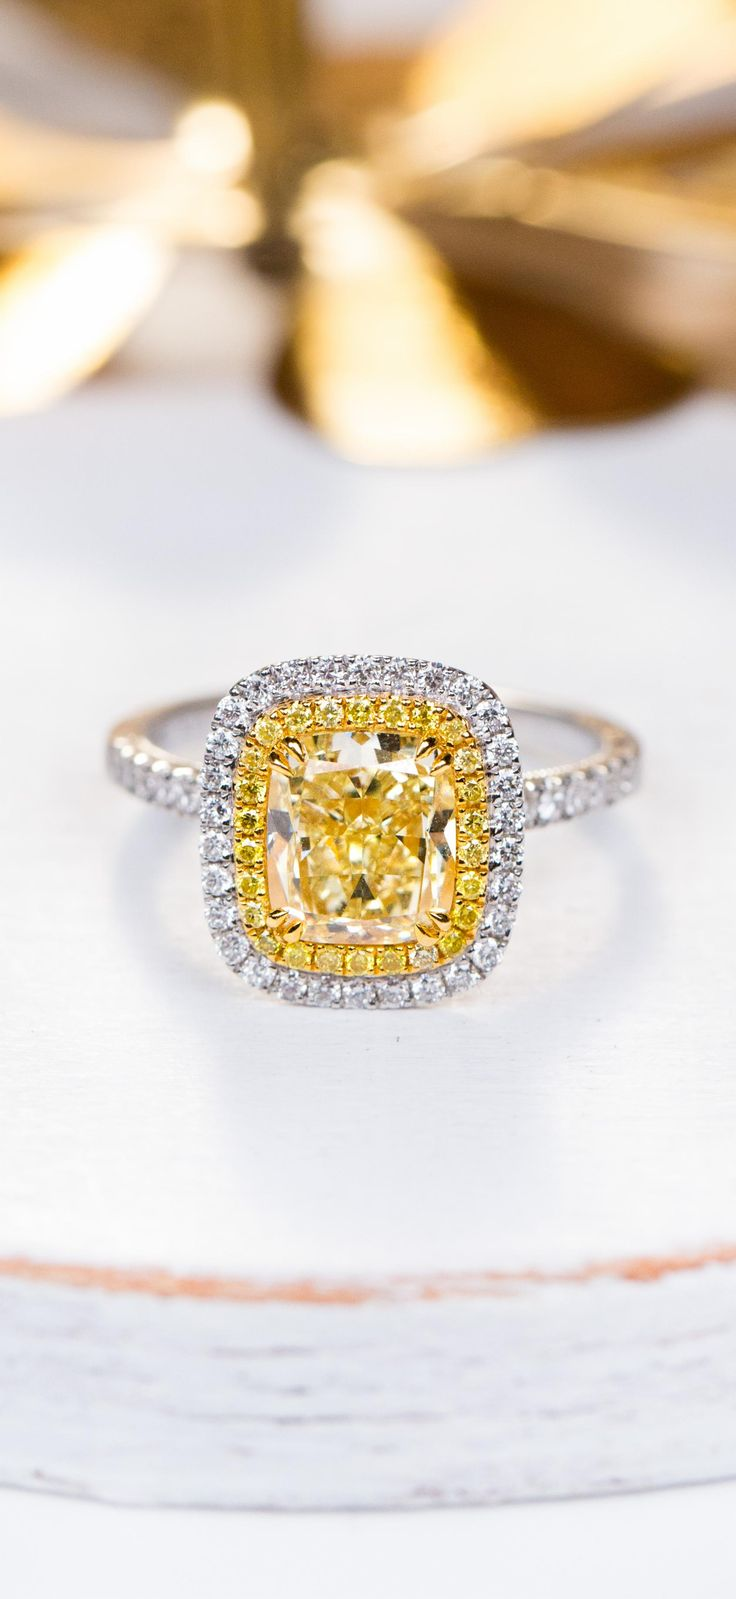 Forevermark Golden Diamonds halo engagement ring is a shining symbol of your love. Find your perfect one to fit your style.